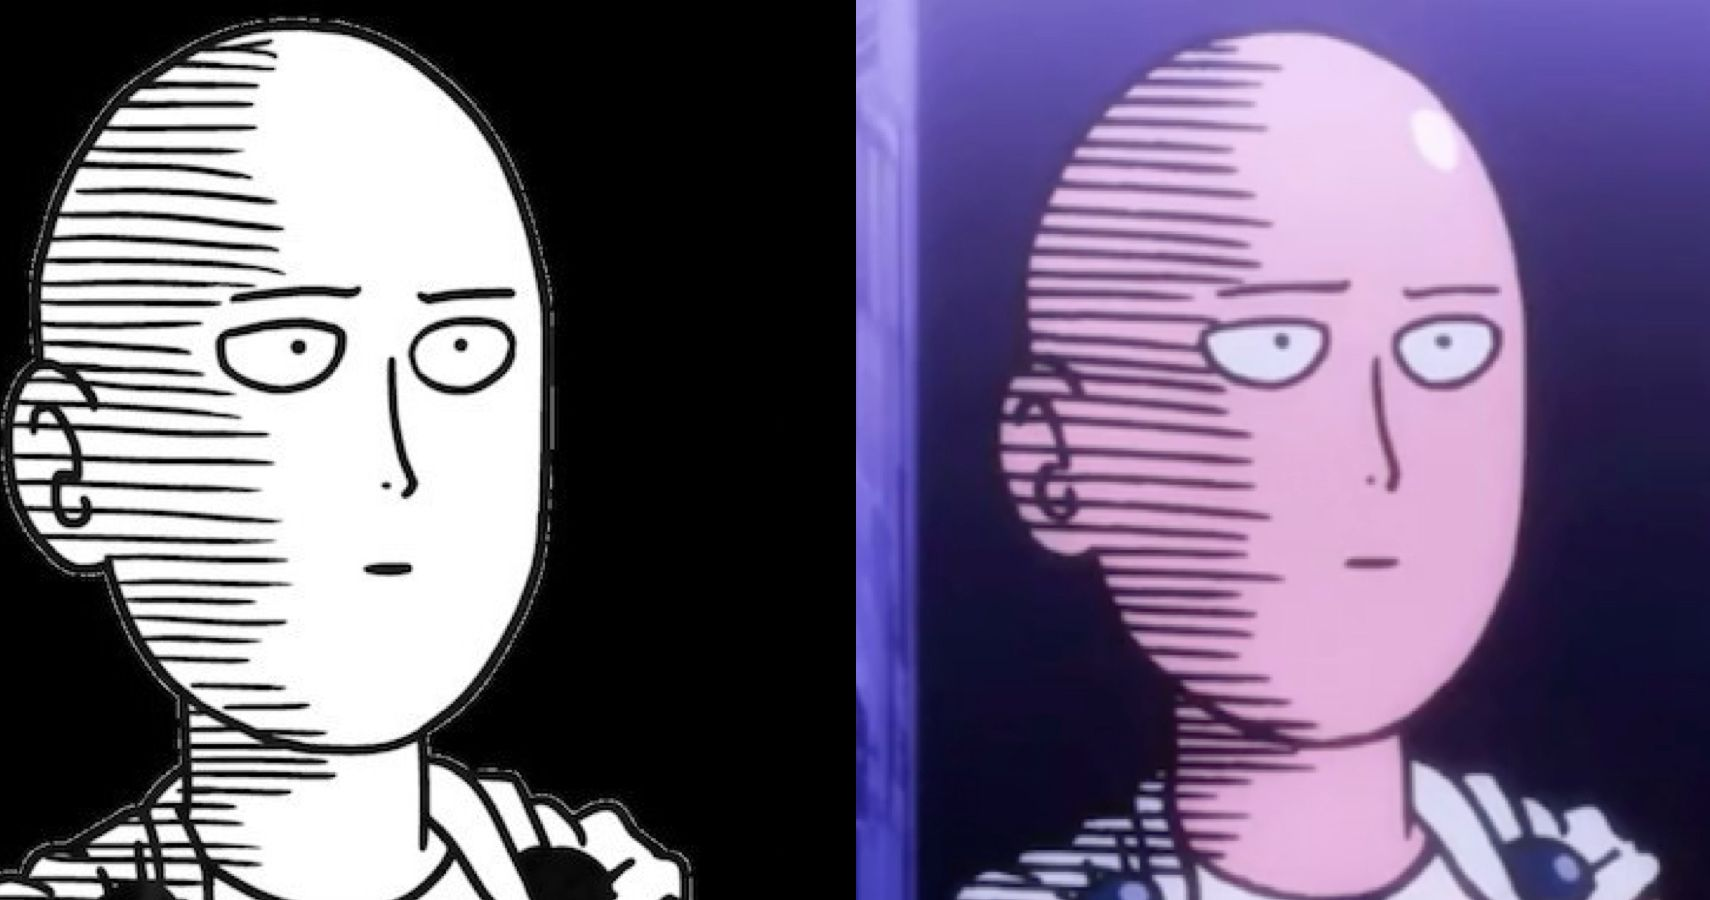 One Punch Man Manga Vs Anime 5 Things Each One Does Better